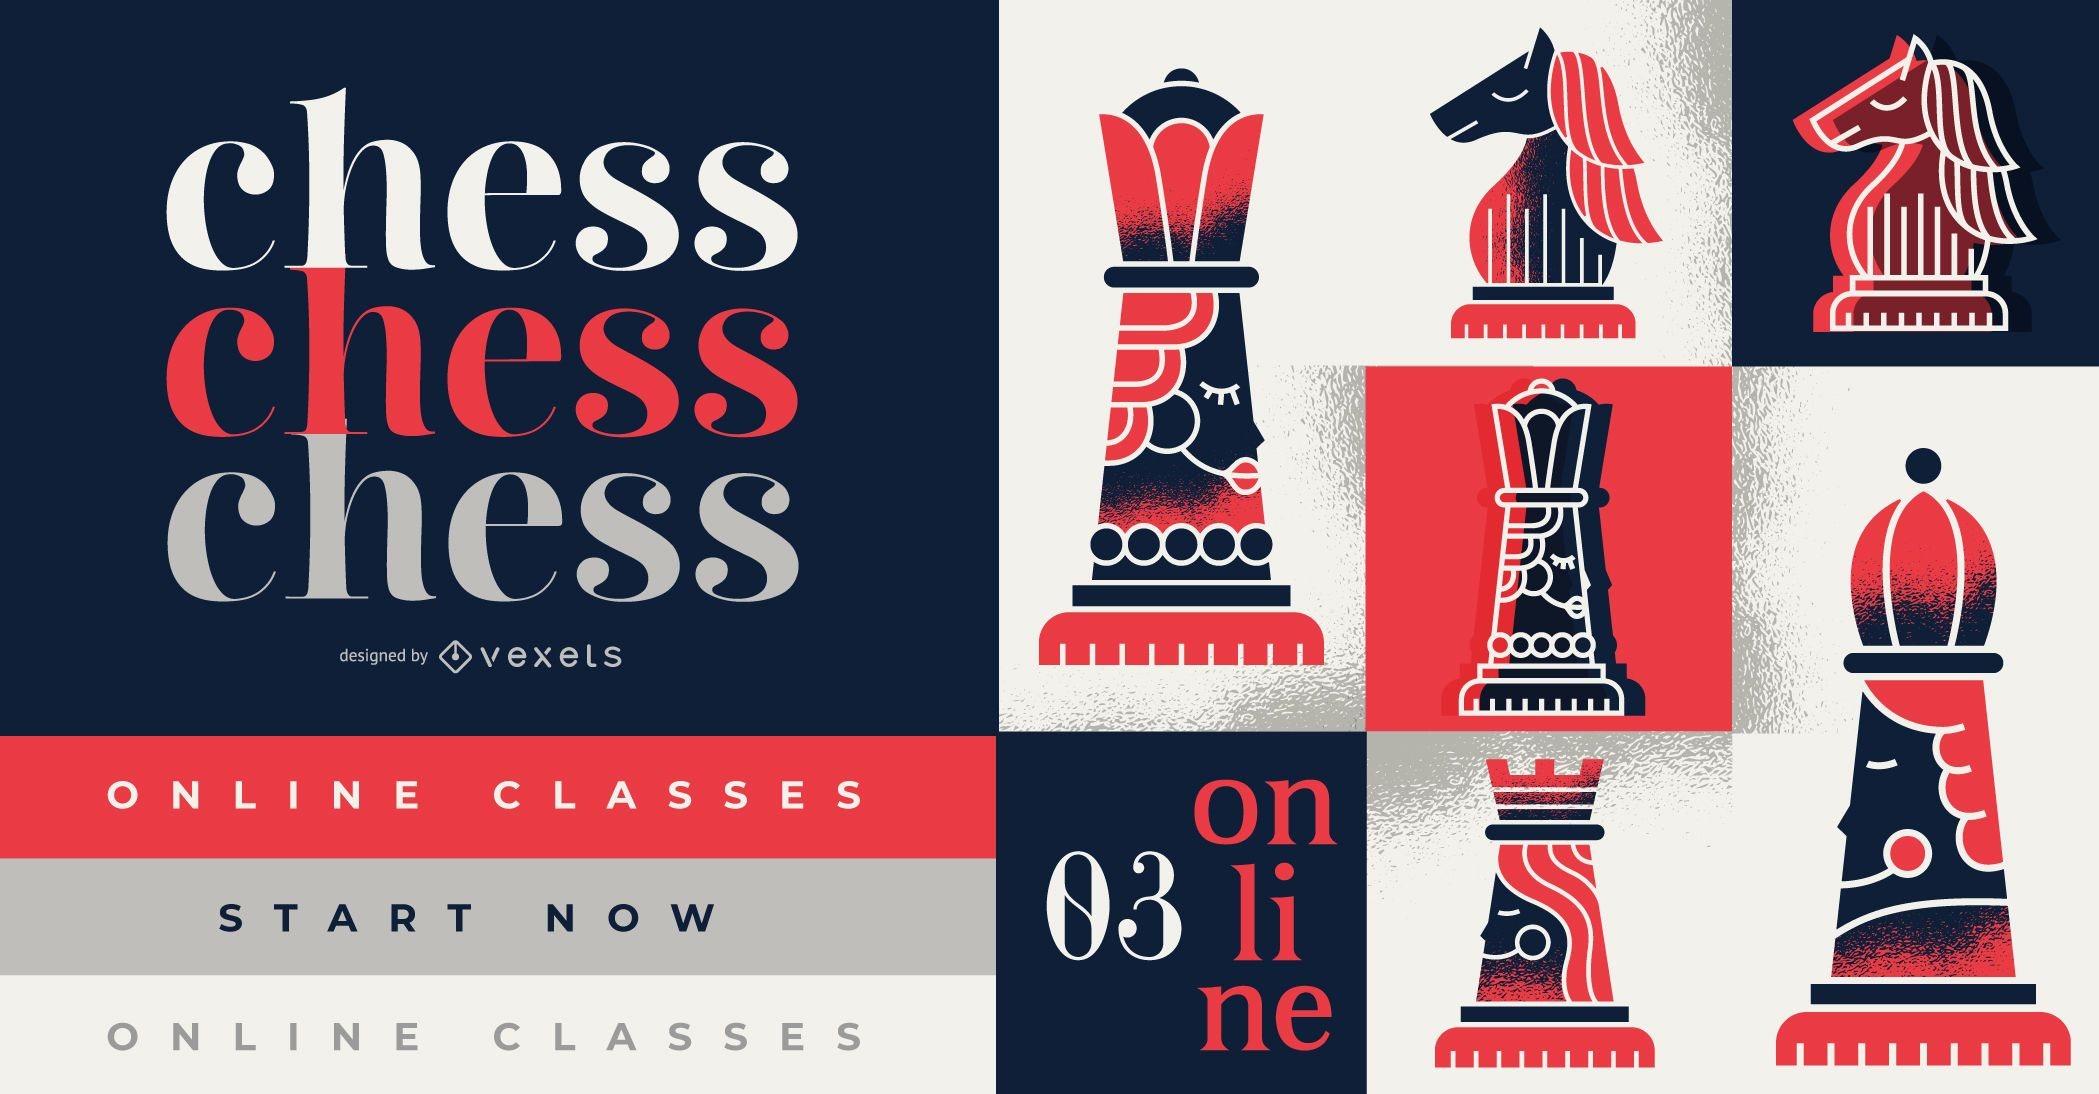 Cover design for online chess lessons featuring editable text.